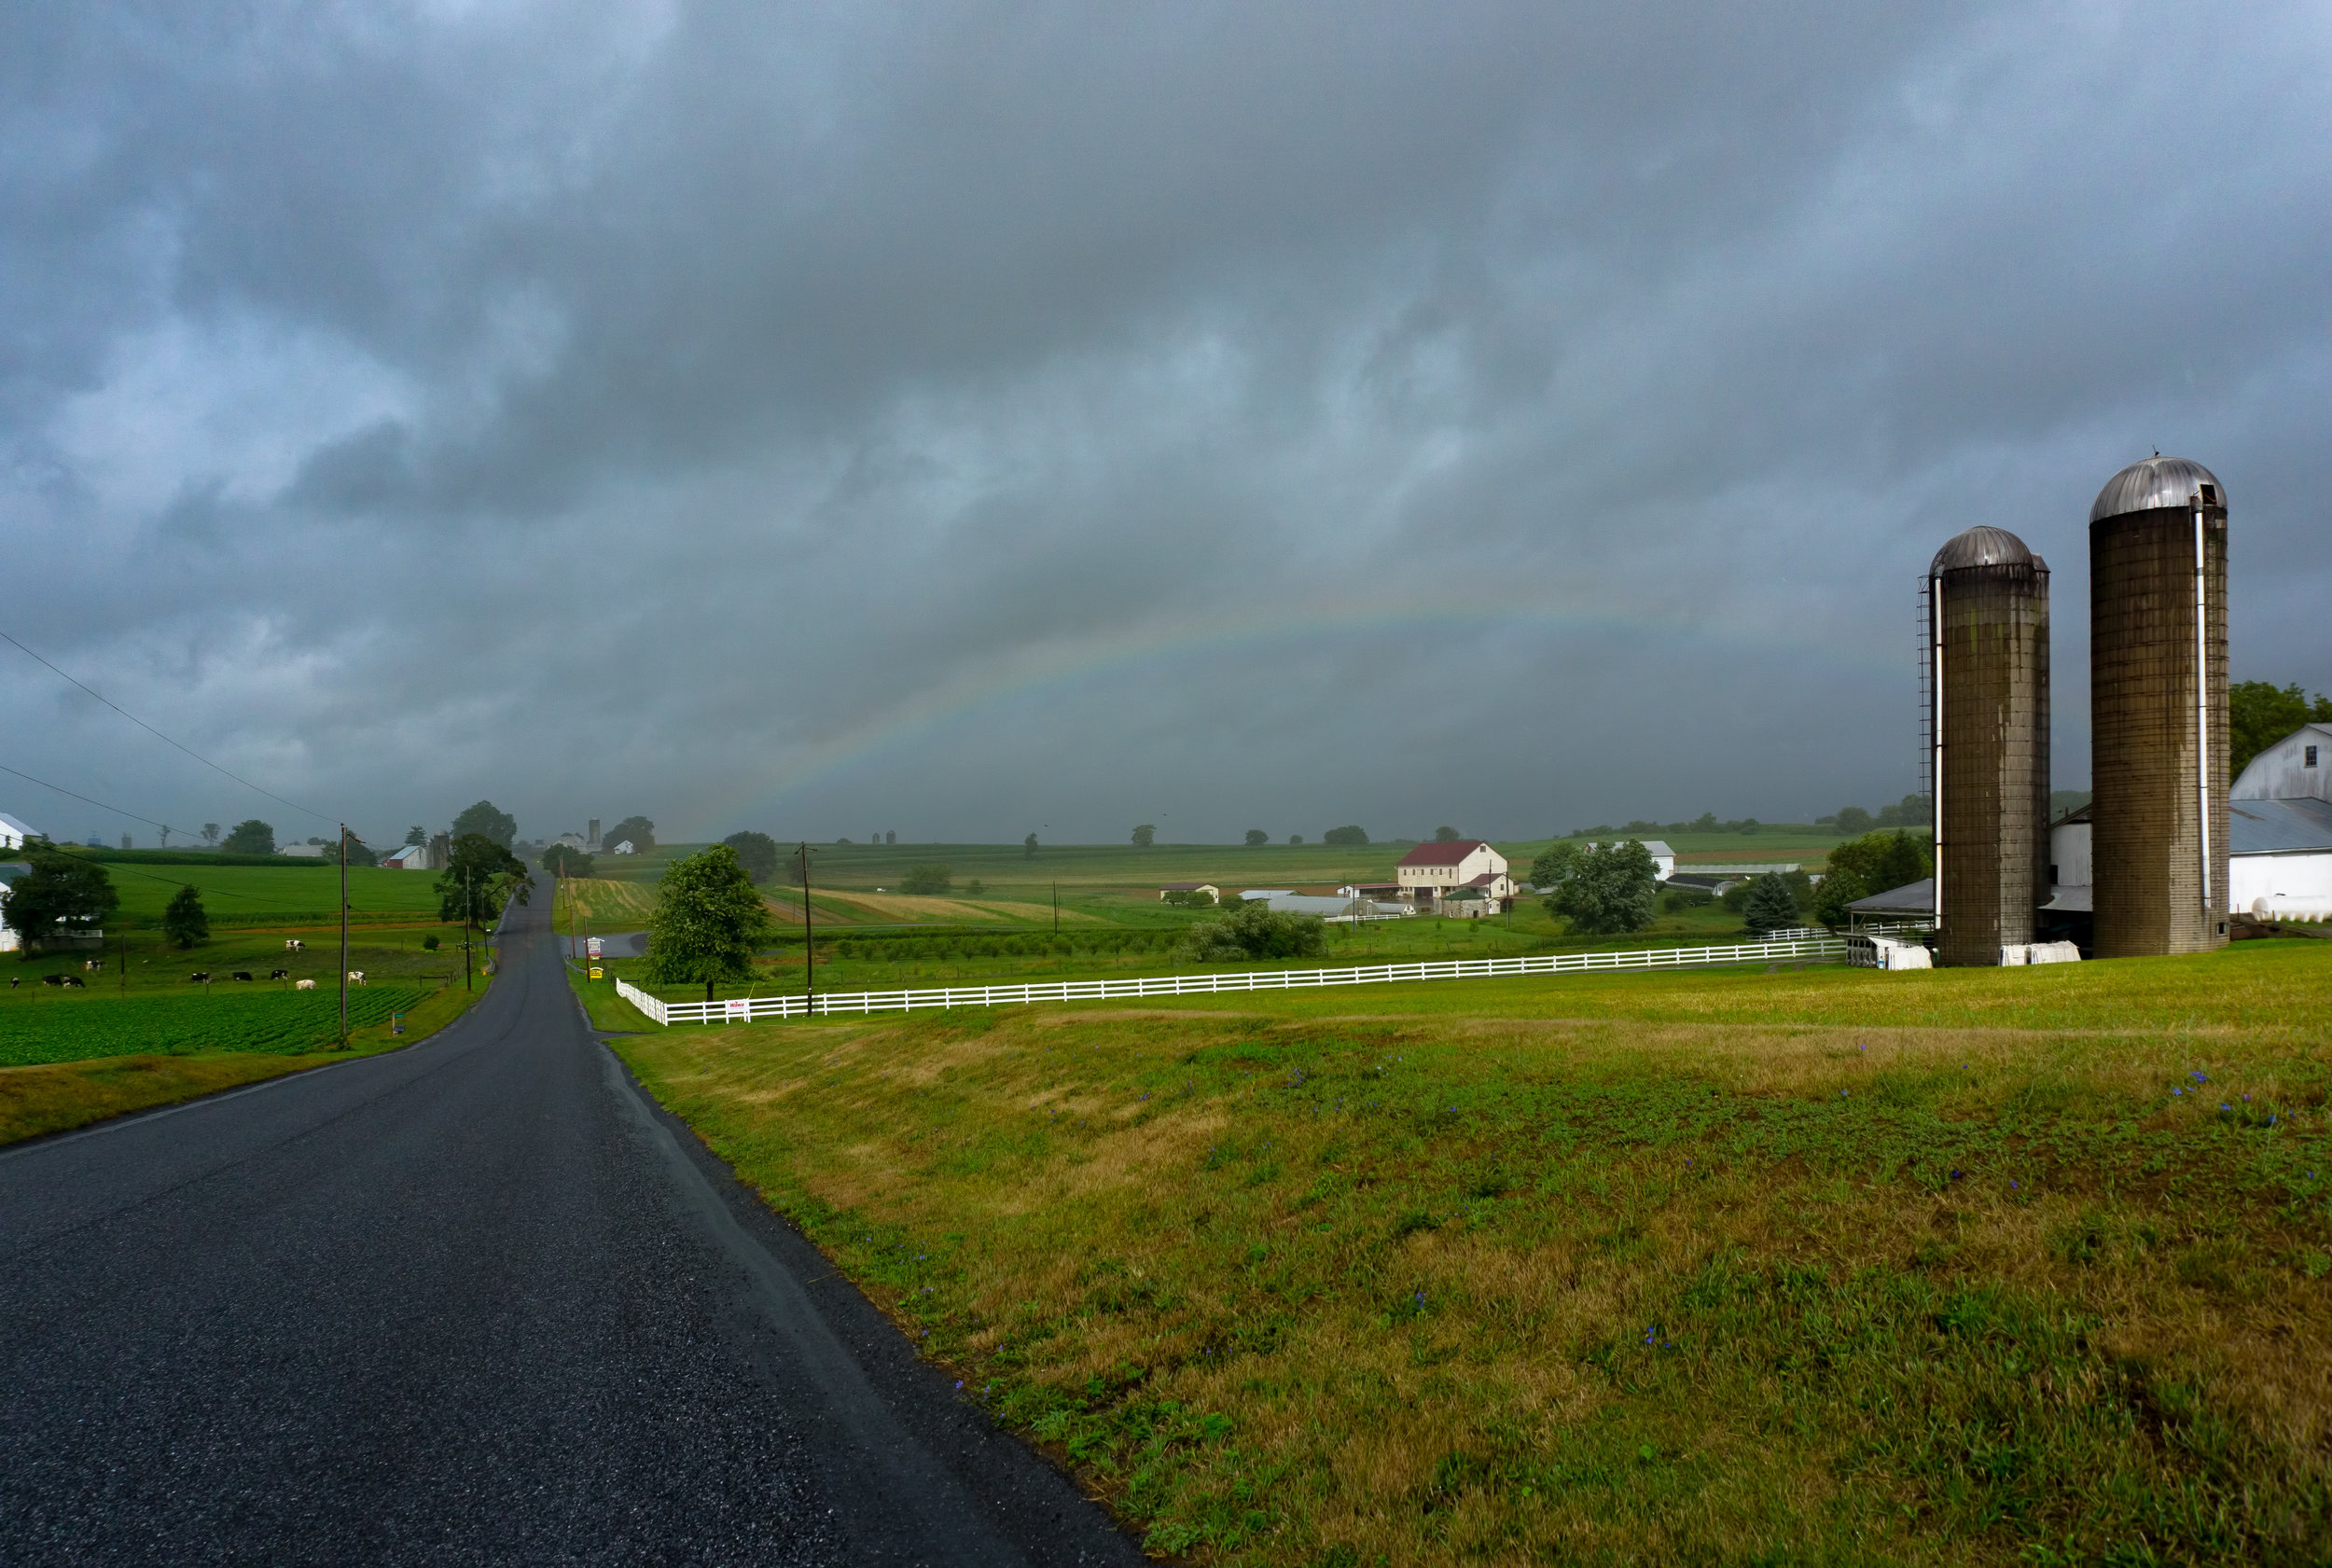 I did manage to capture this rainbow on the way home along Weaverland Road in East Earl. The farm wagon produce stand at the bottom of the hill is one of my favorites!